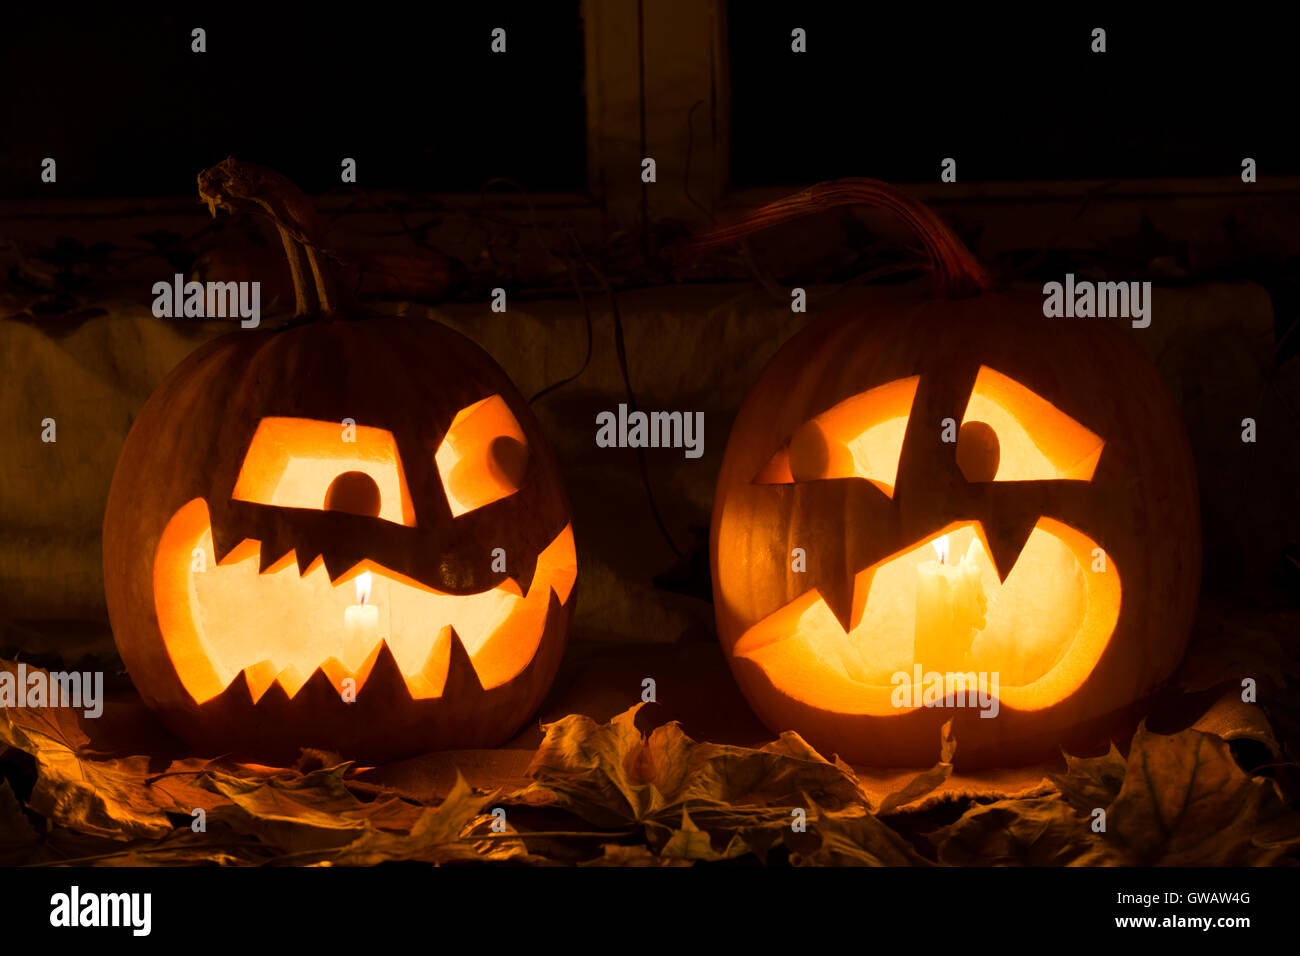 Photo composition from two pumpkins on Halloween. Embittered and frightened pumpkins stand against an old window, - Stock Image